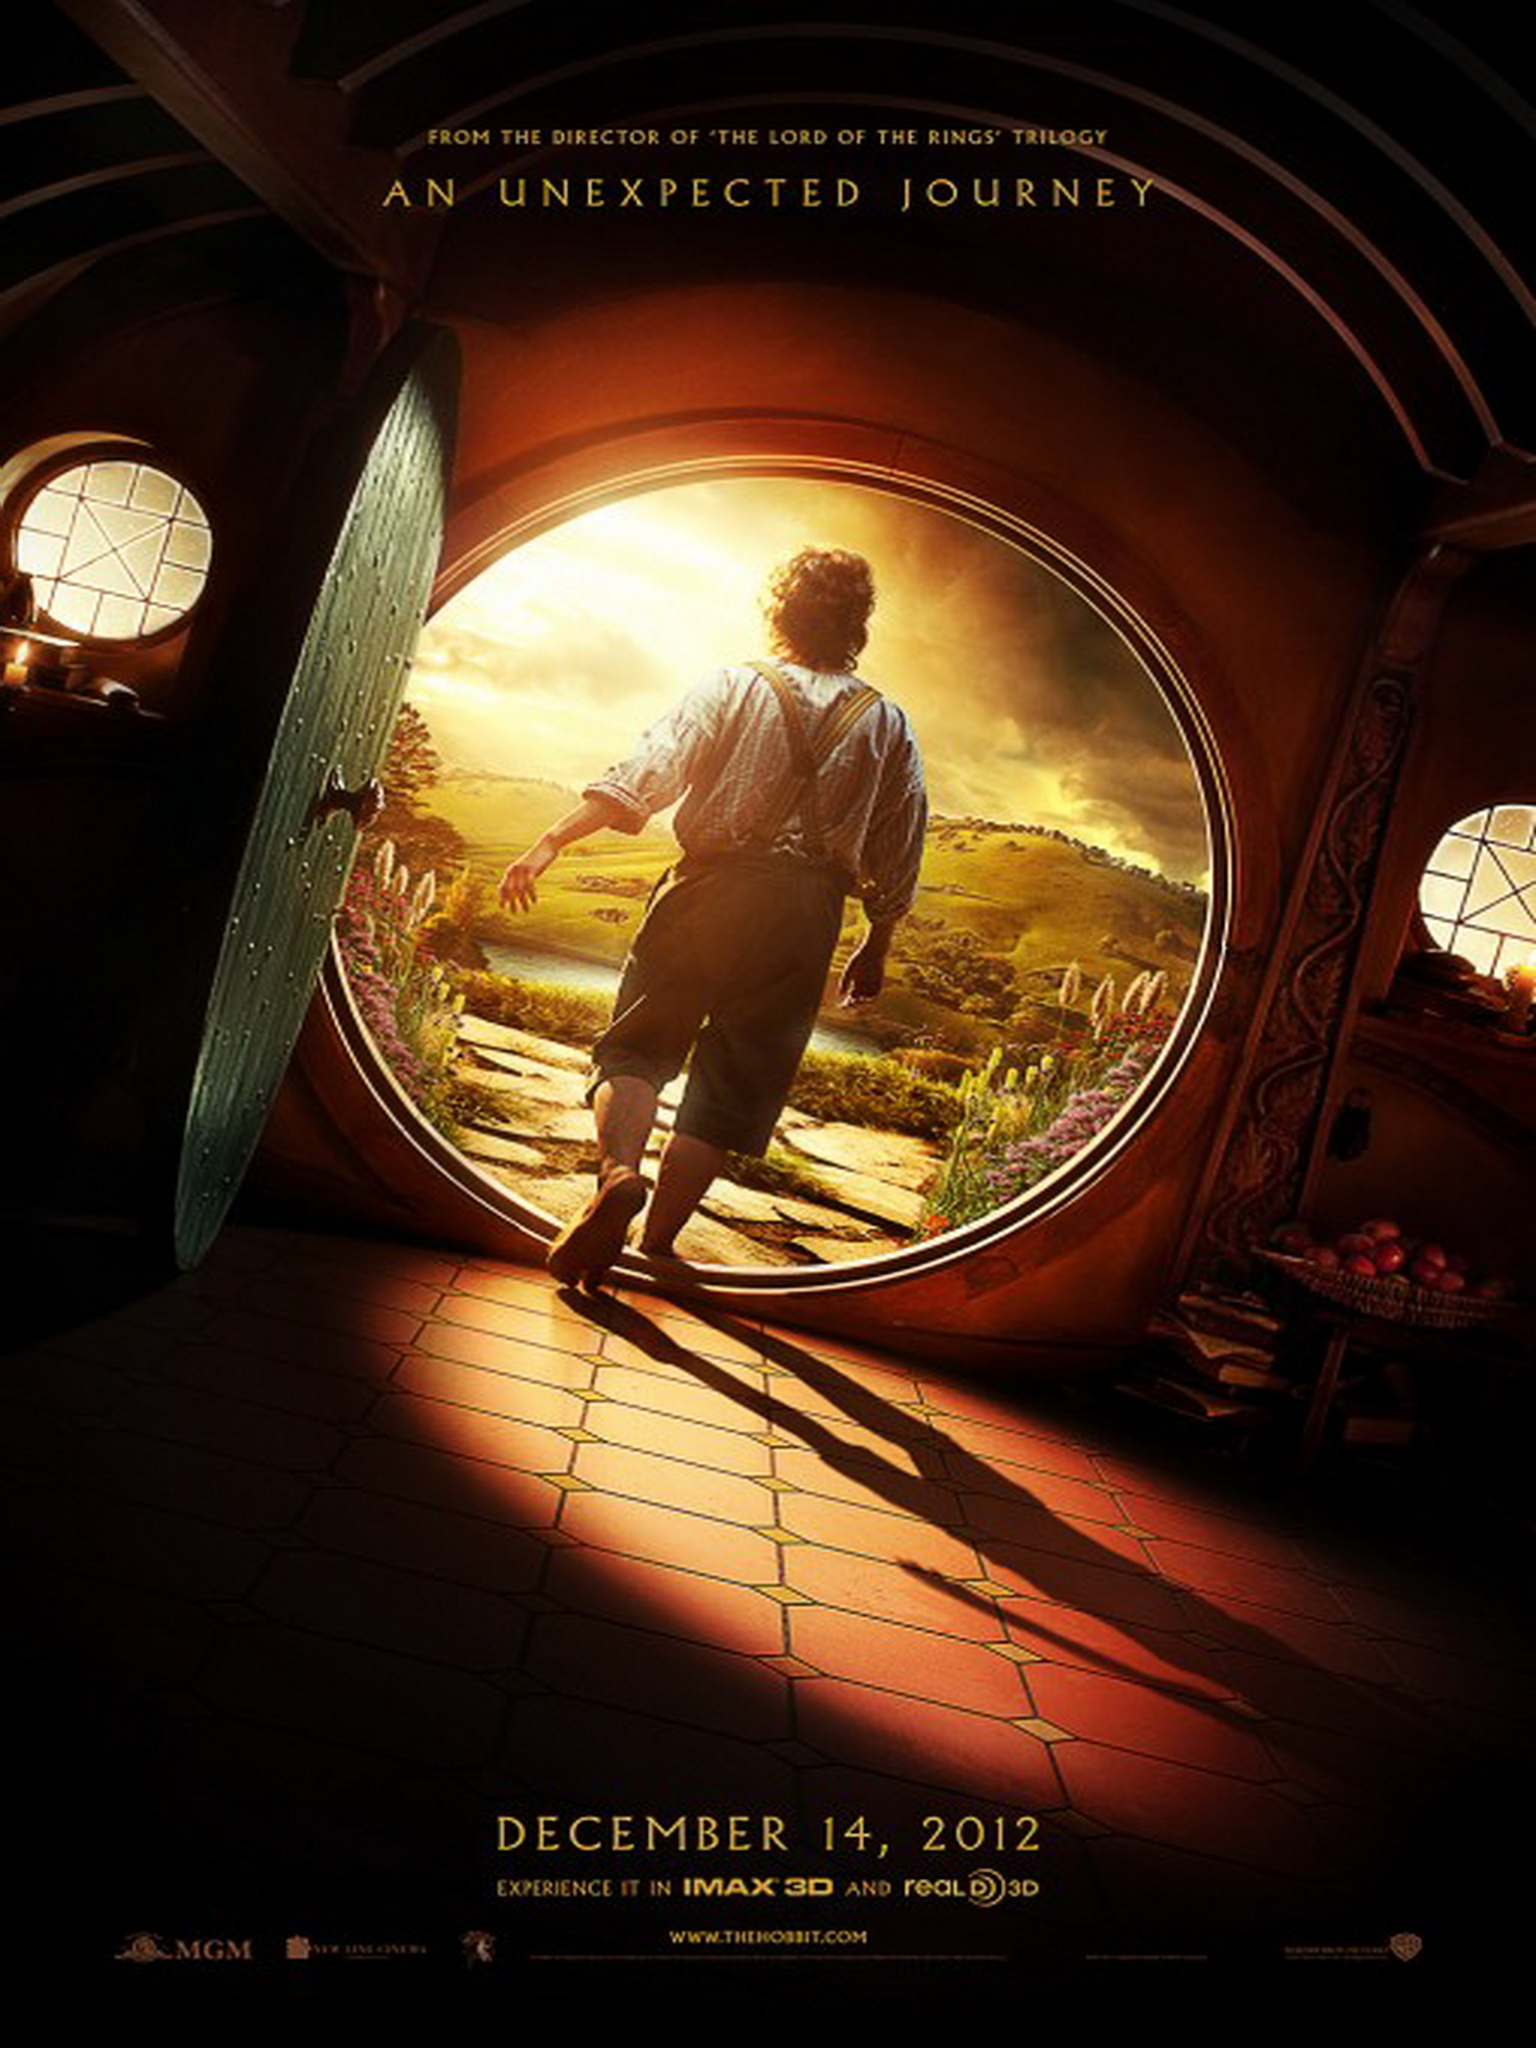 The Hobbit: An Unexpected Journey - Movie Poster #3 (Original)